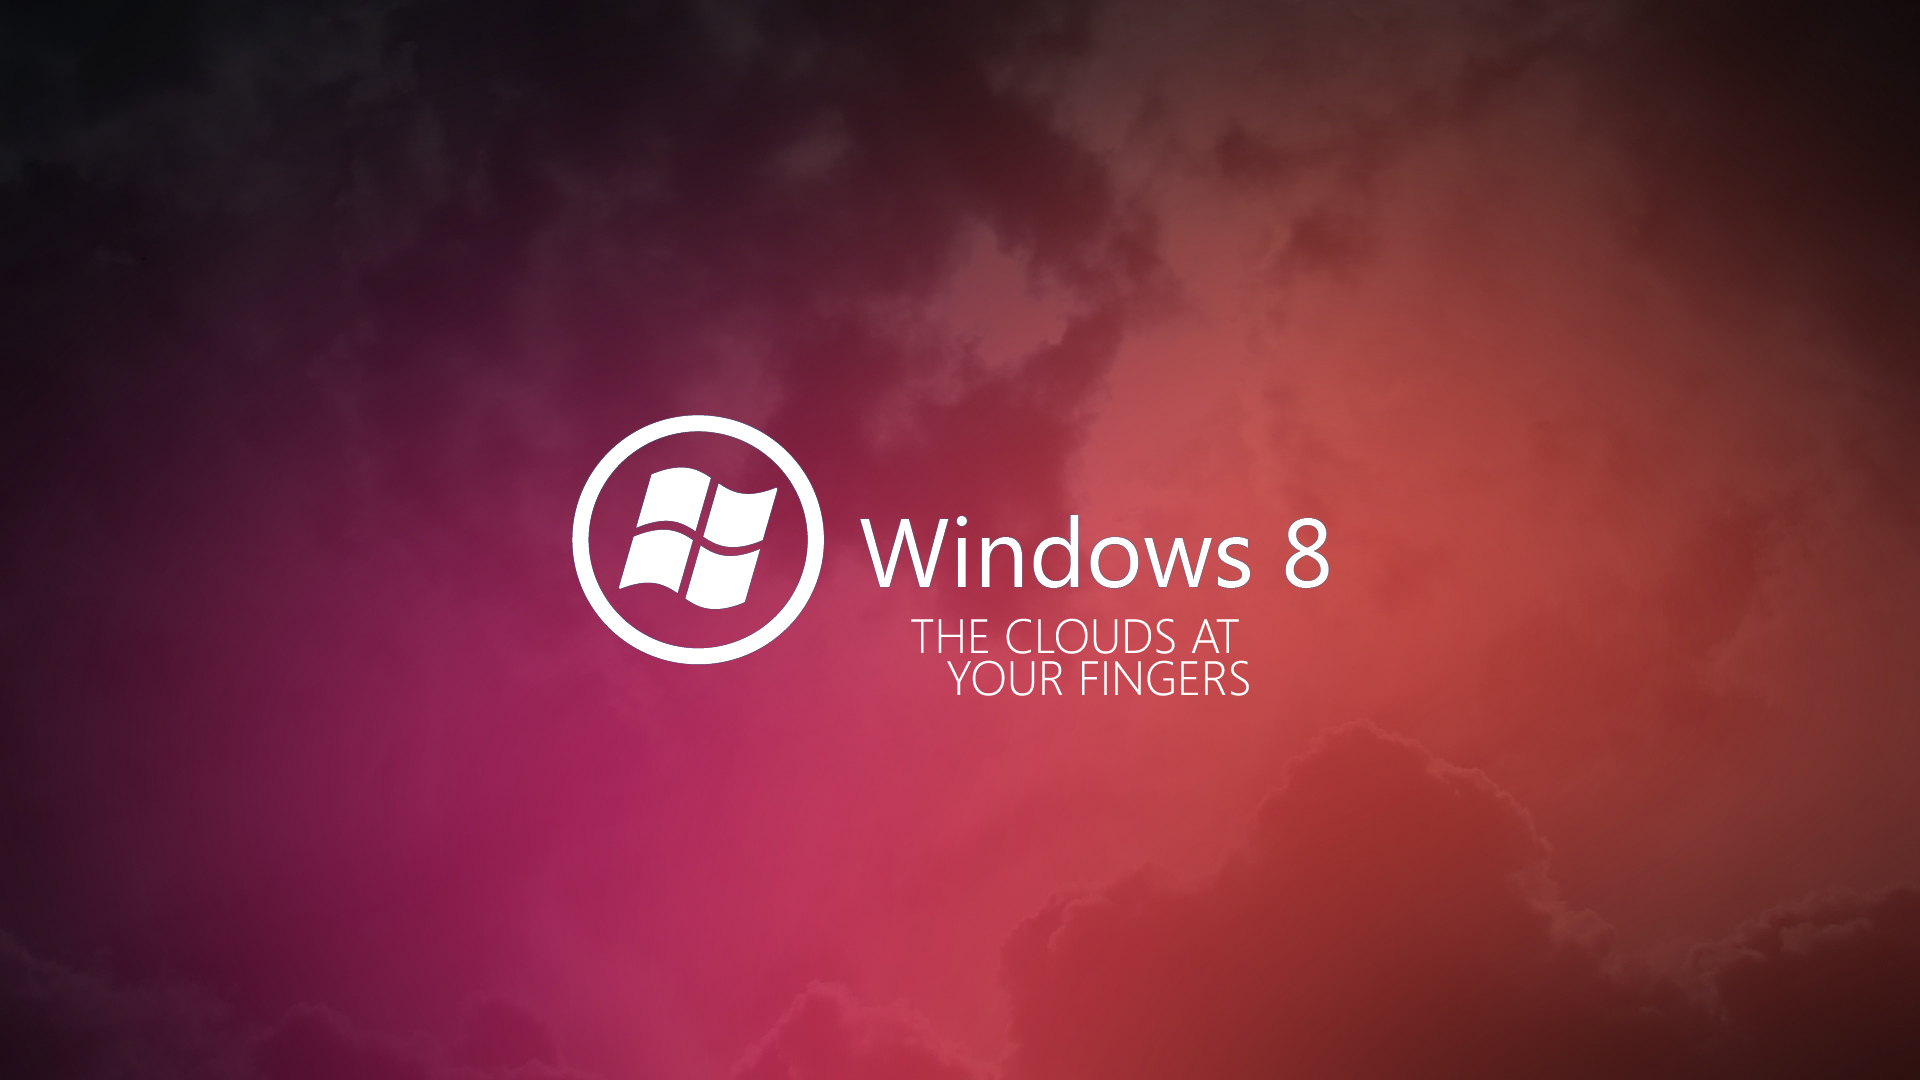 WINDOWS 8 BG03